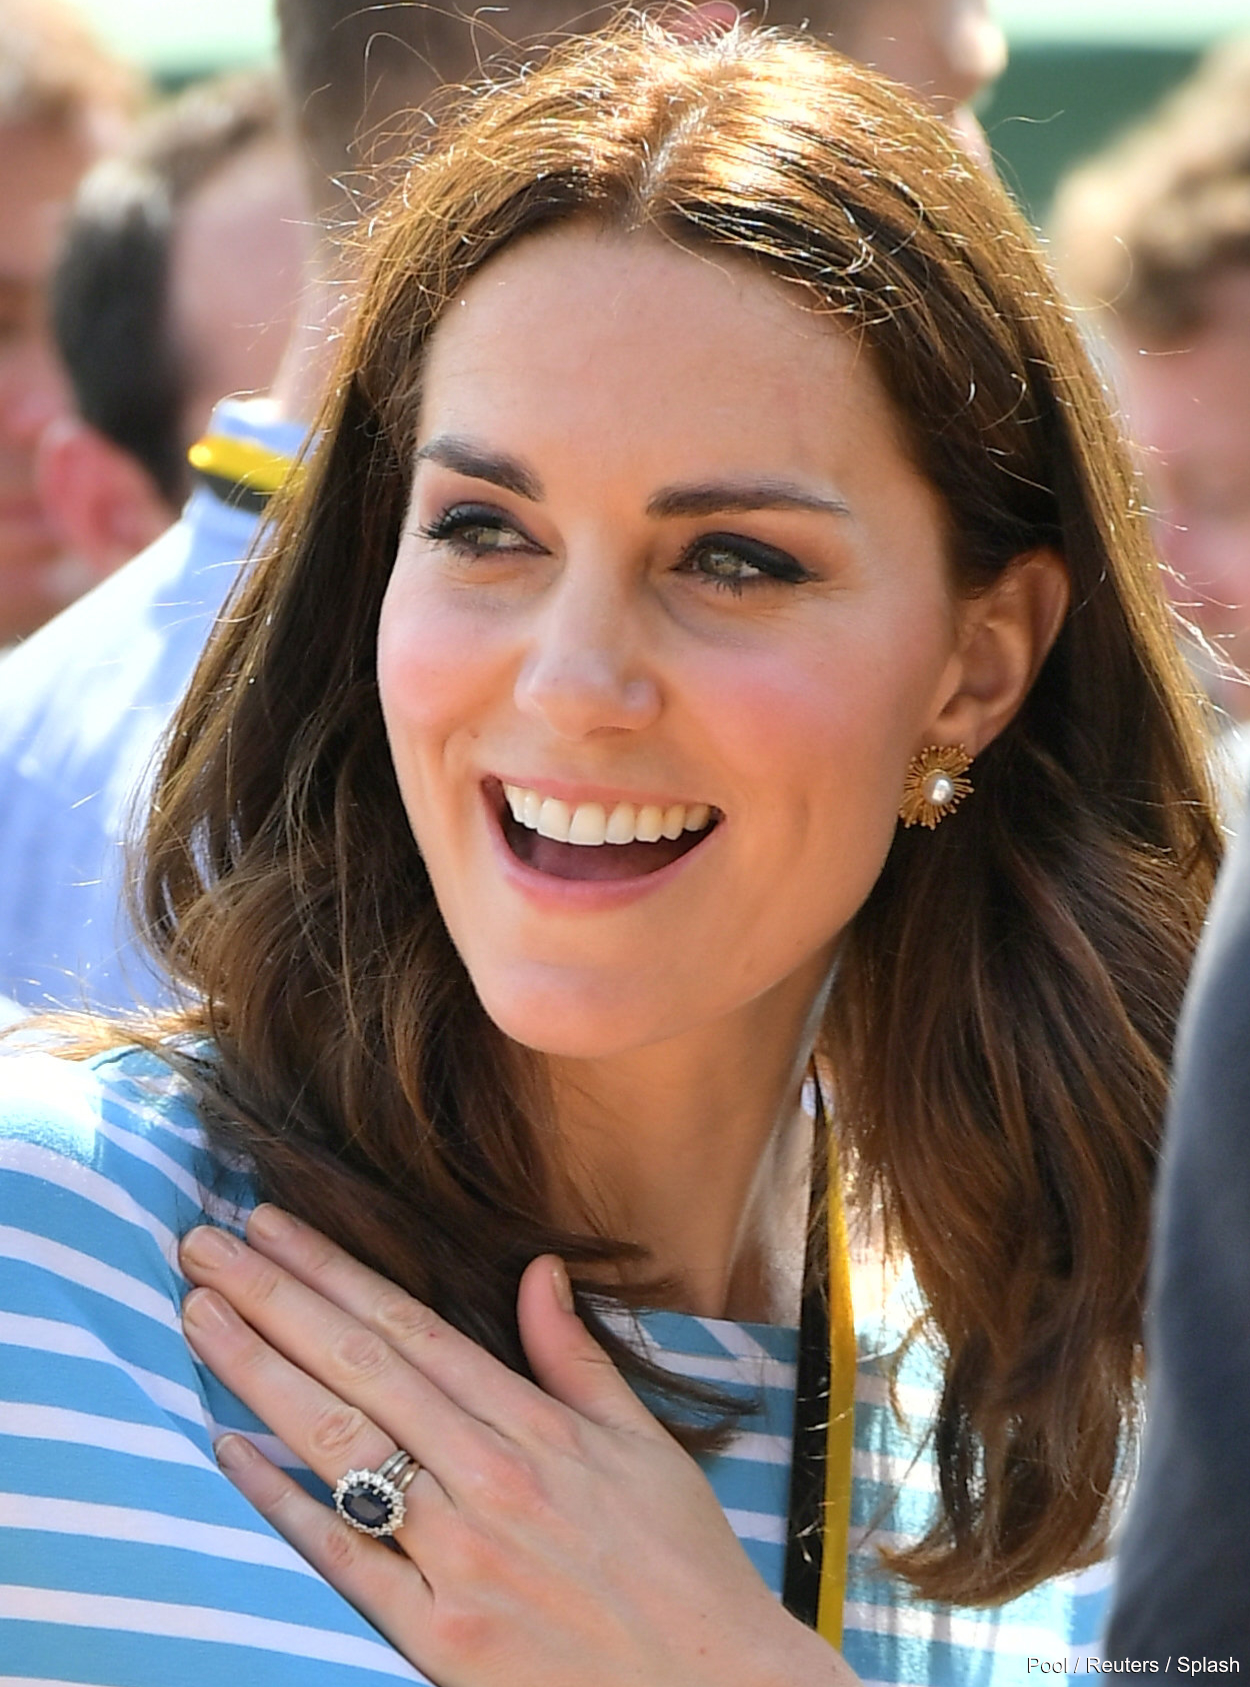 Kate Middleton engagement ring replica of the sapphire diamond ring